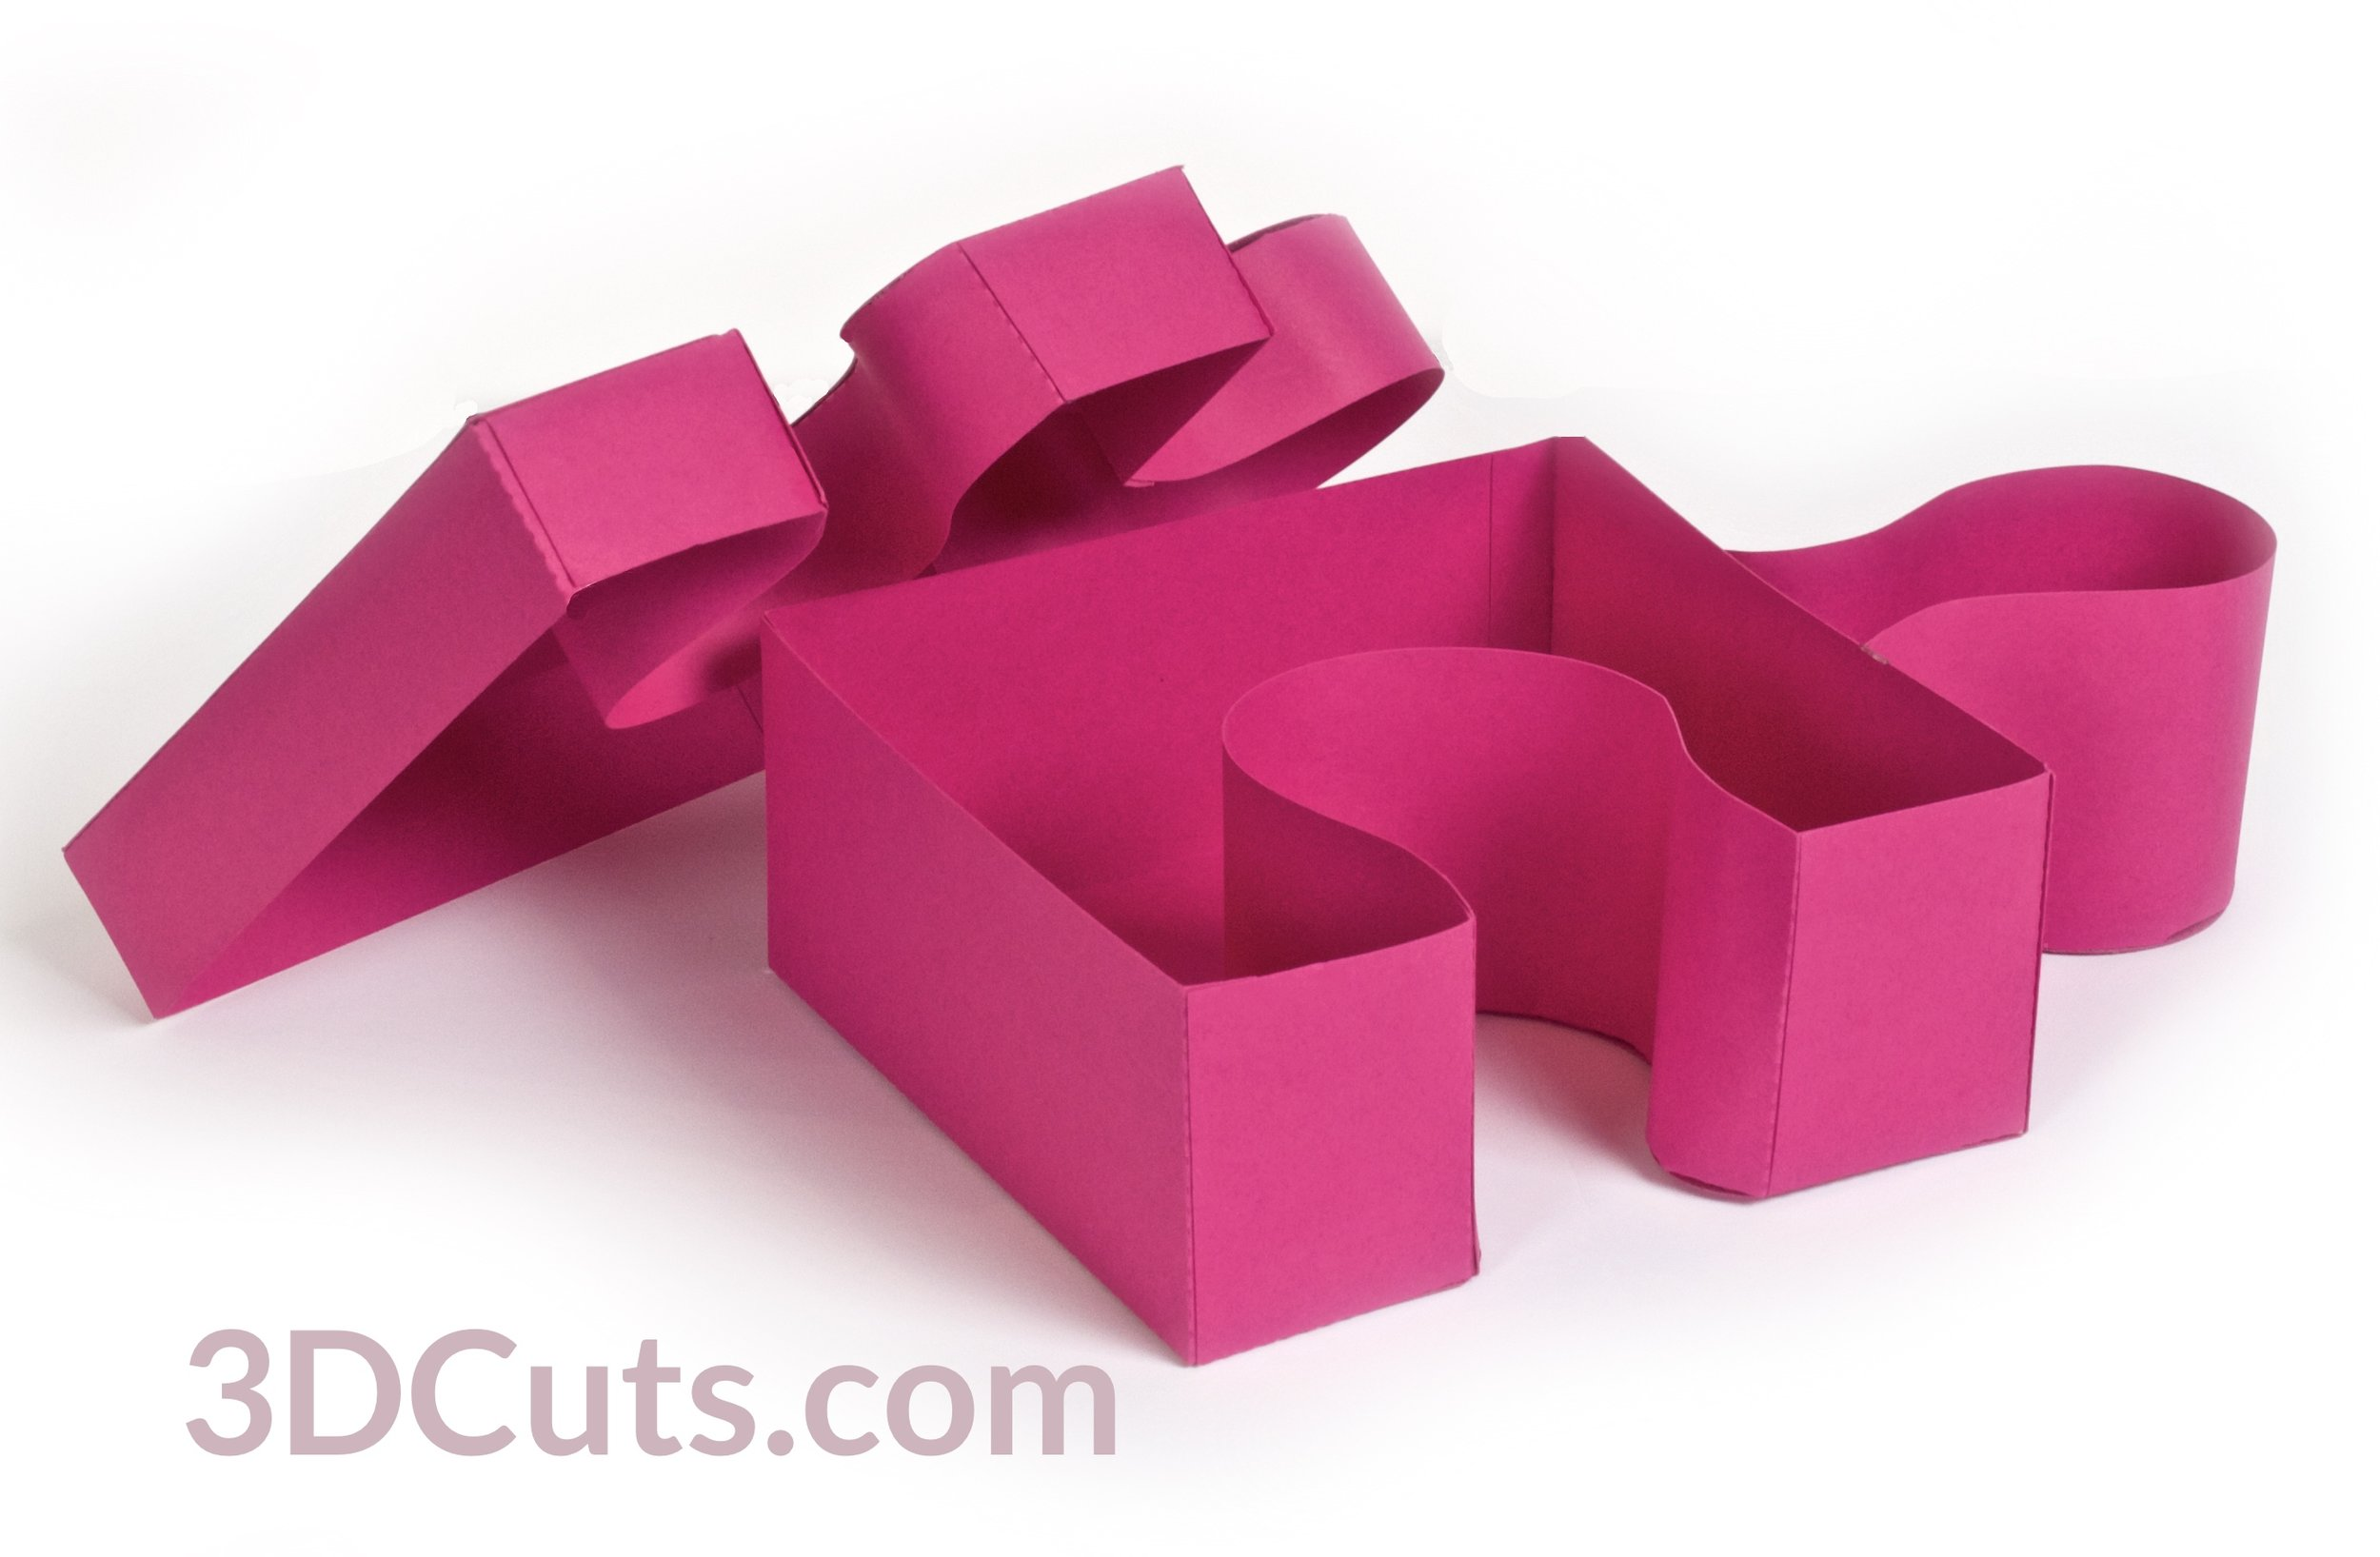 1 puzzle open pink rectangle w wm.jpg